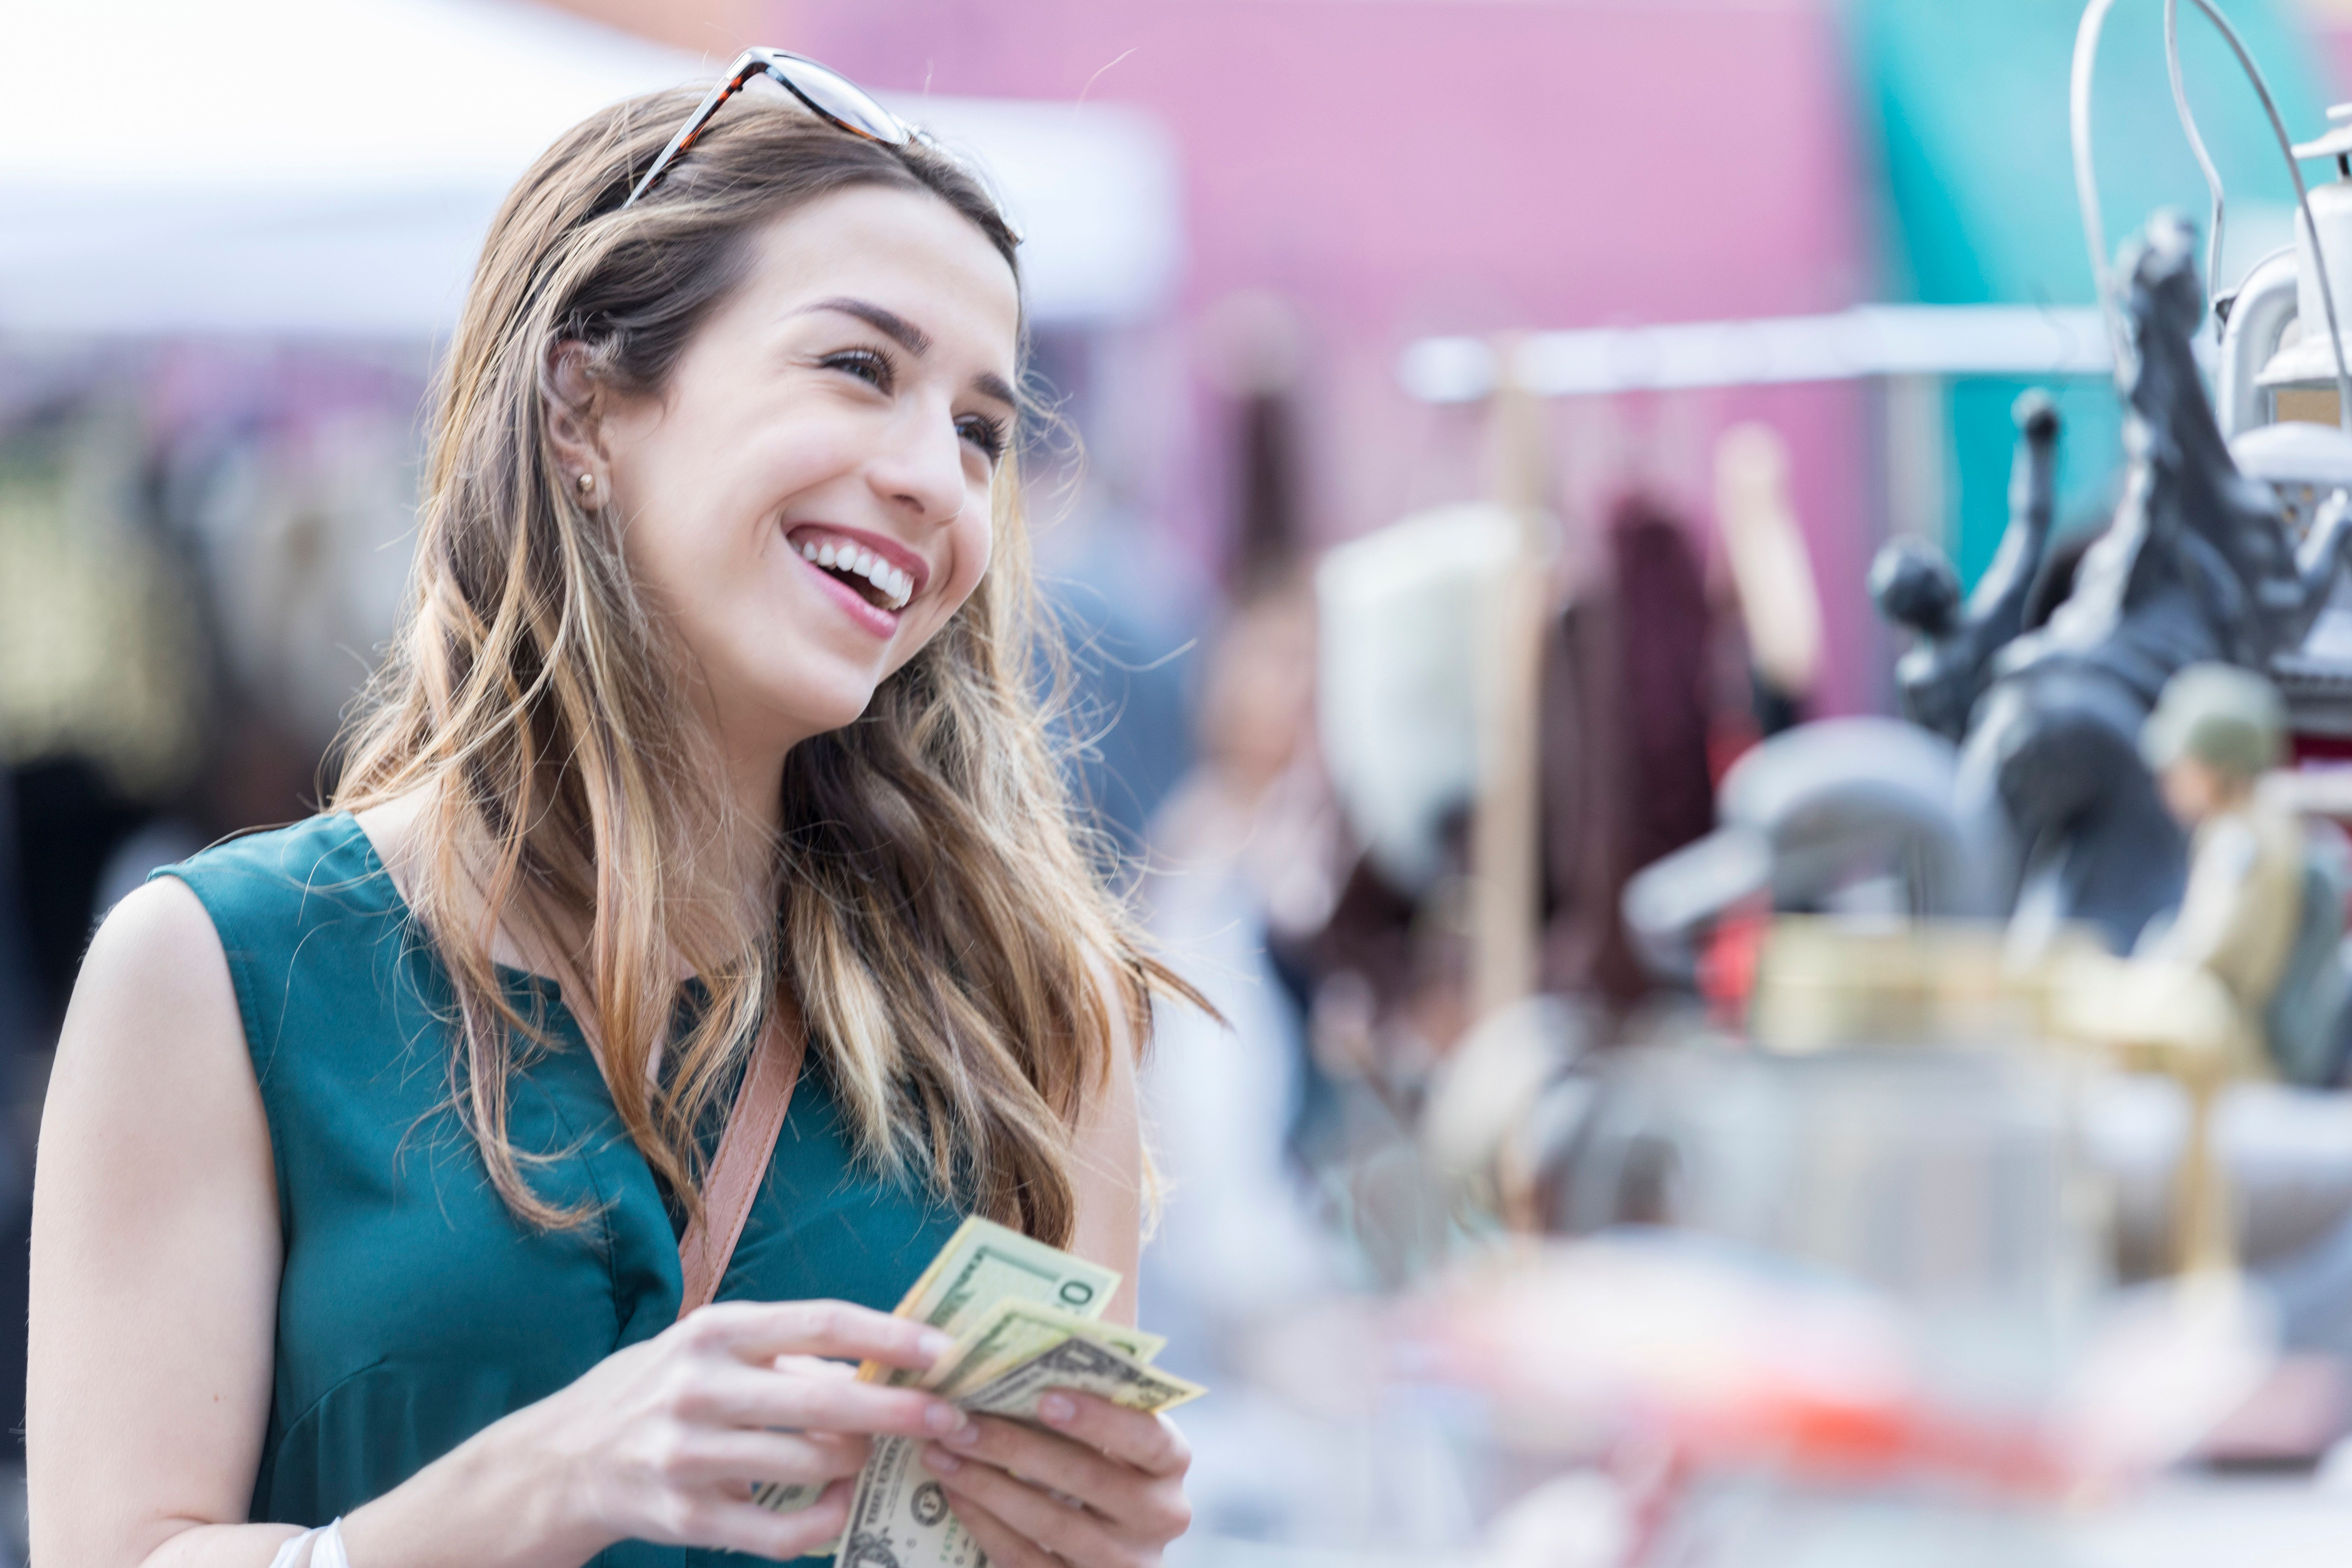 A smiling young woman holds paper currency ready to make a purchase in an outdoor street shop in New York City.